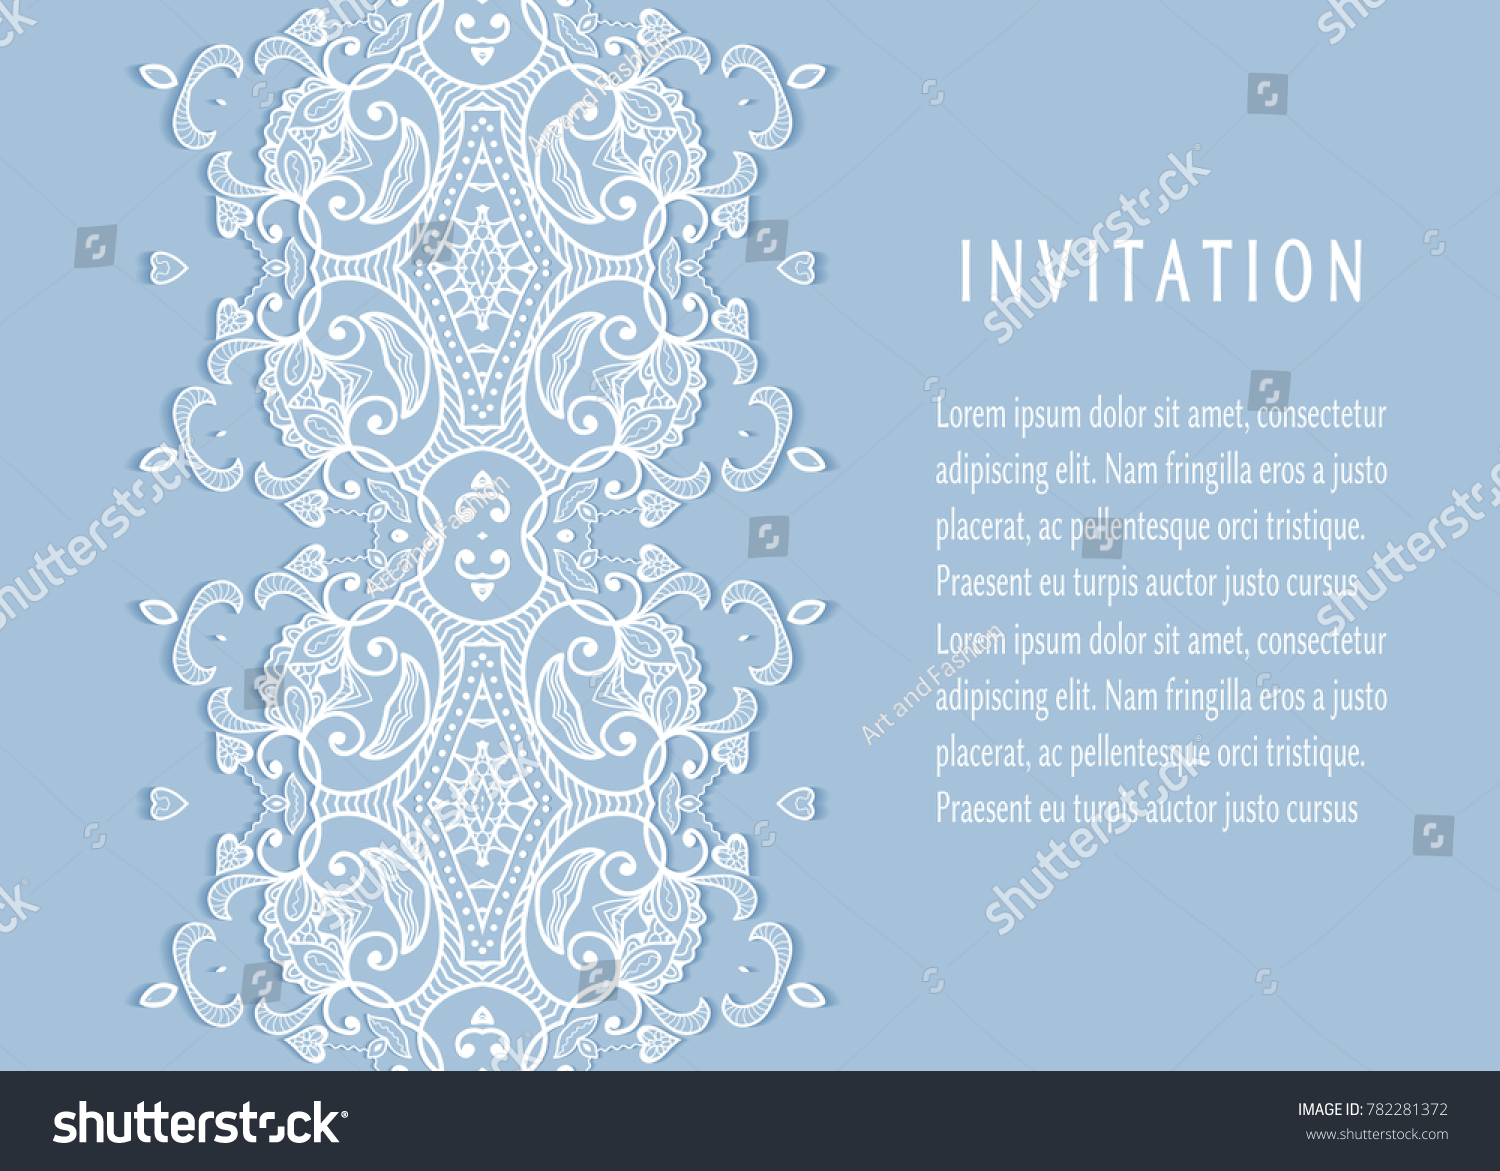 invitation or card template with lace mandala border cutout paper